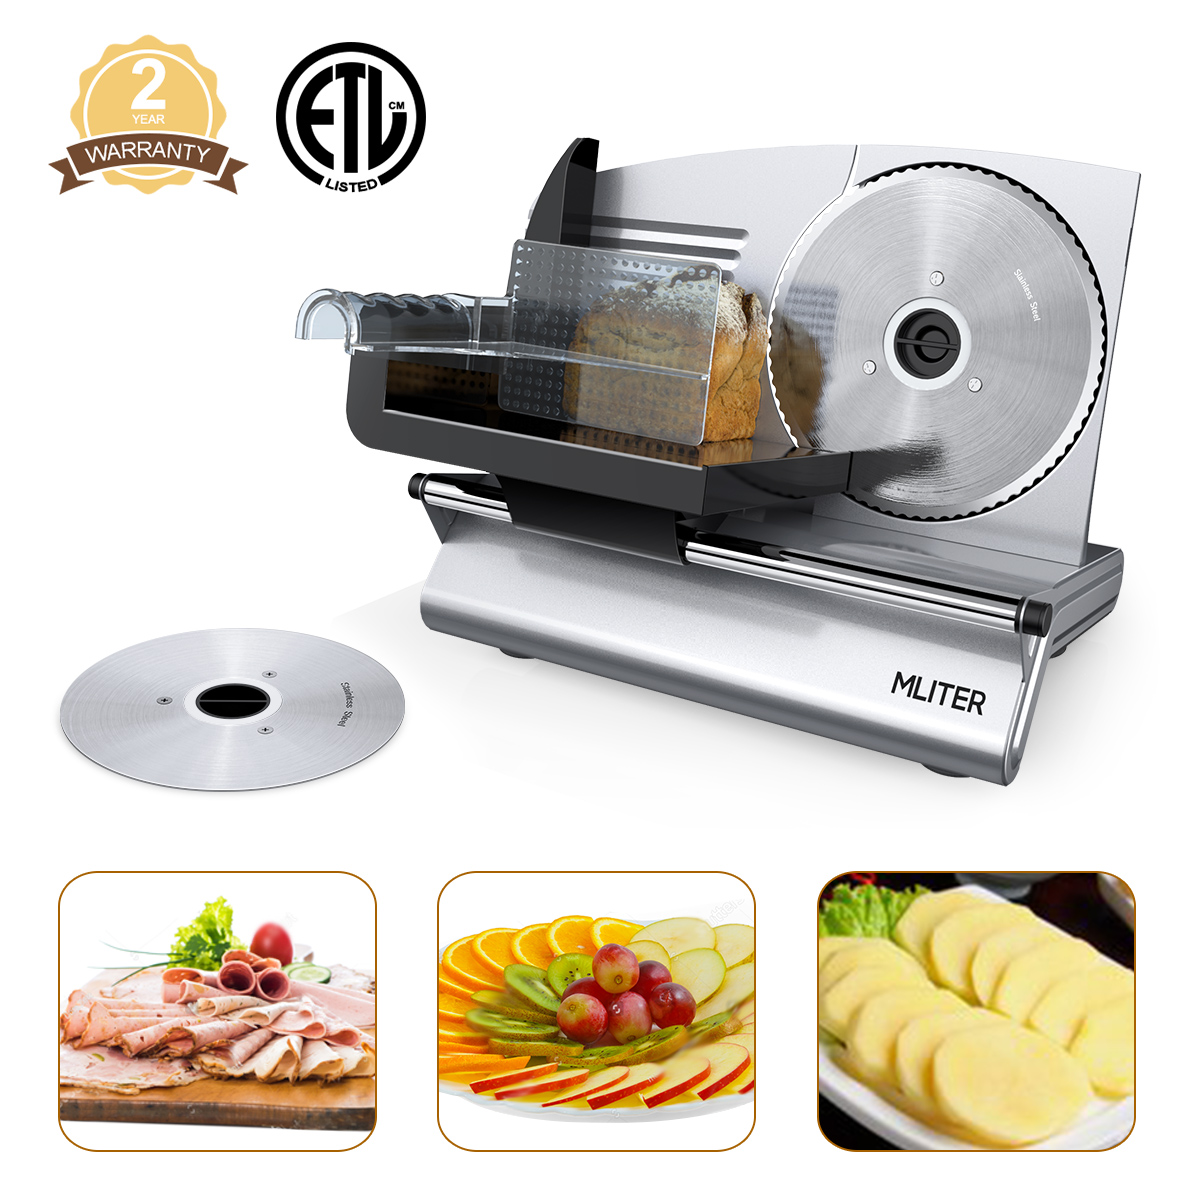 "Mliter FS-9001A Professional Electric Power Food & Meat Slicer with Removable 7.5"" Stainless steel Blade"